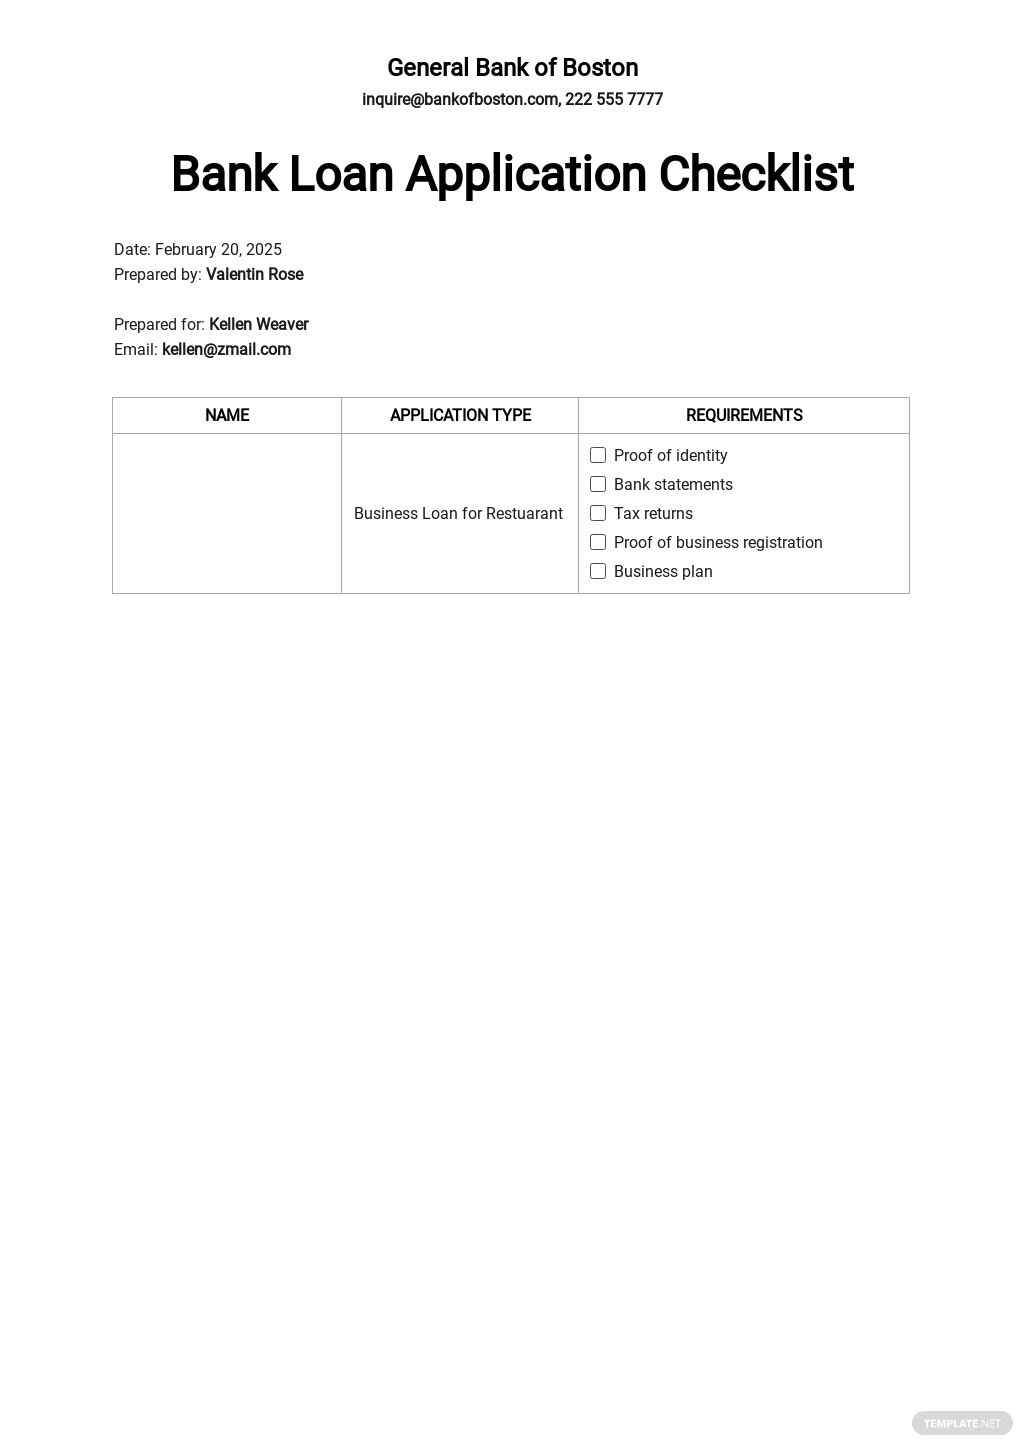 Bank Loan Application Form and Checklist for Restaurant Template.jpe